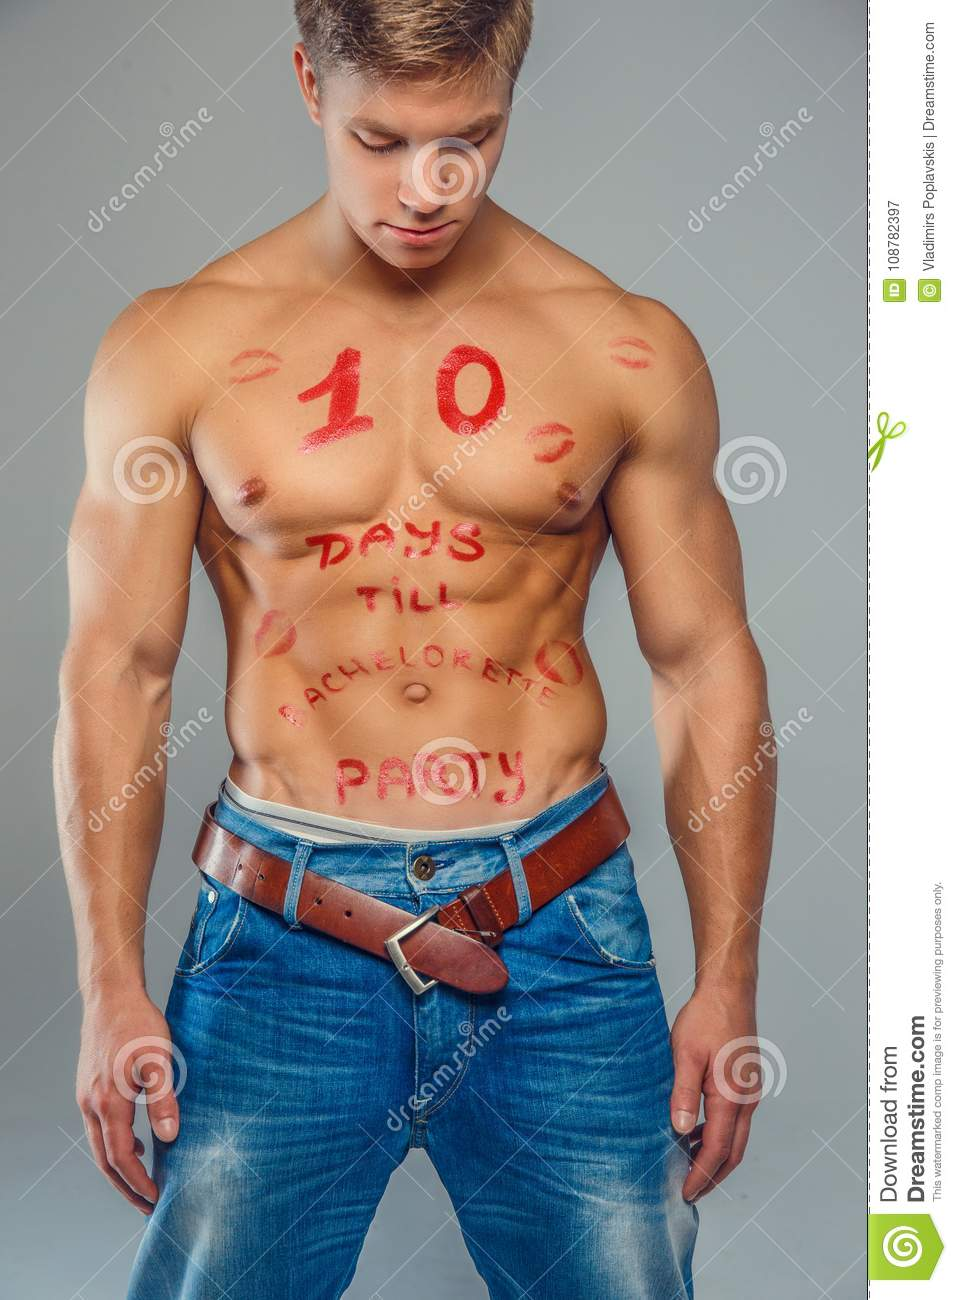 98e4675e Muscular Man In Blue Jeans. Stock Image - Image of pectoral, healthy ...